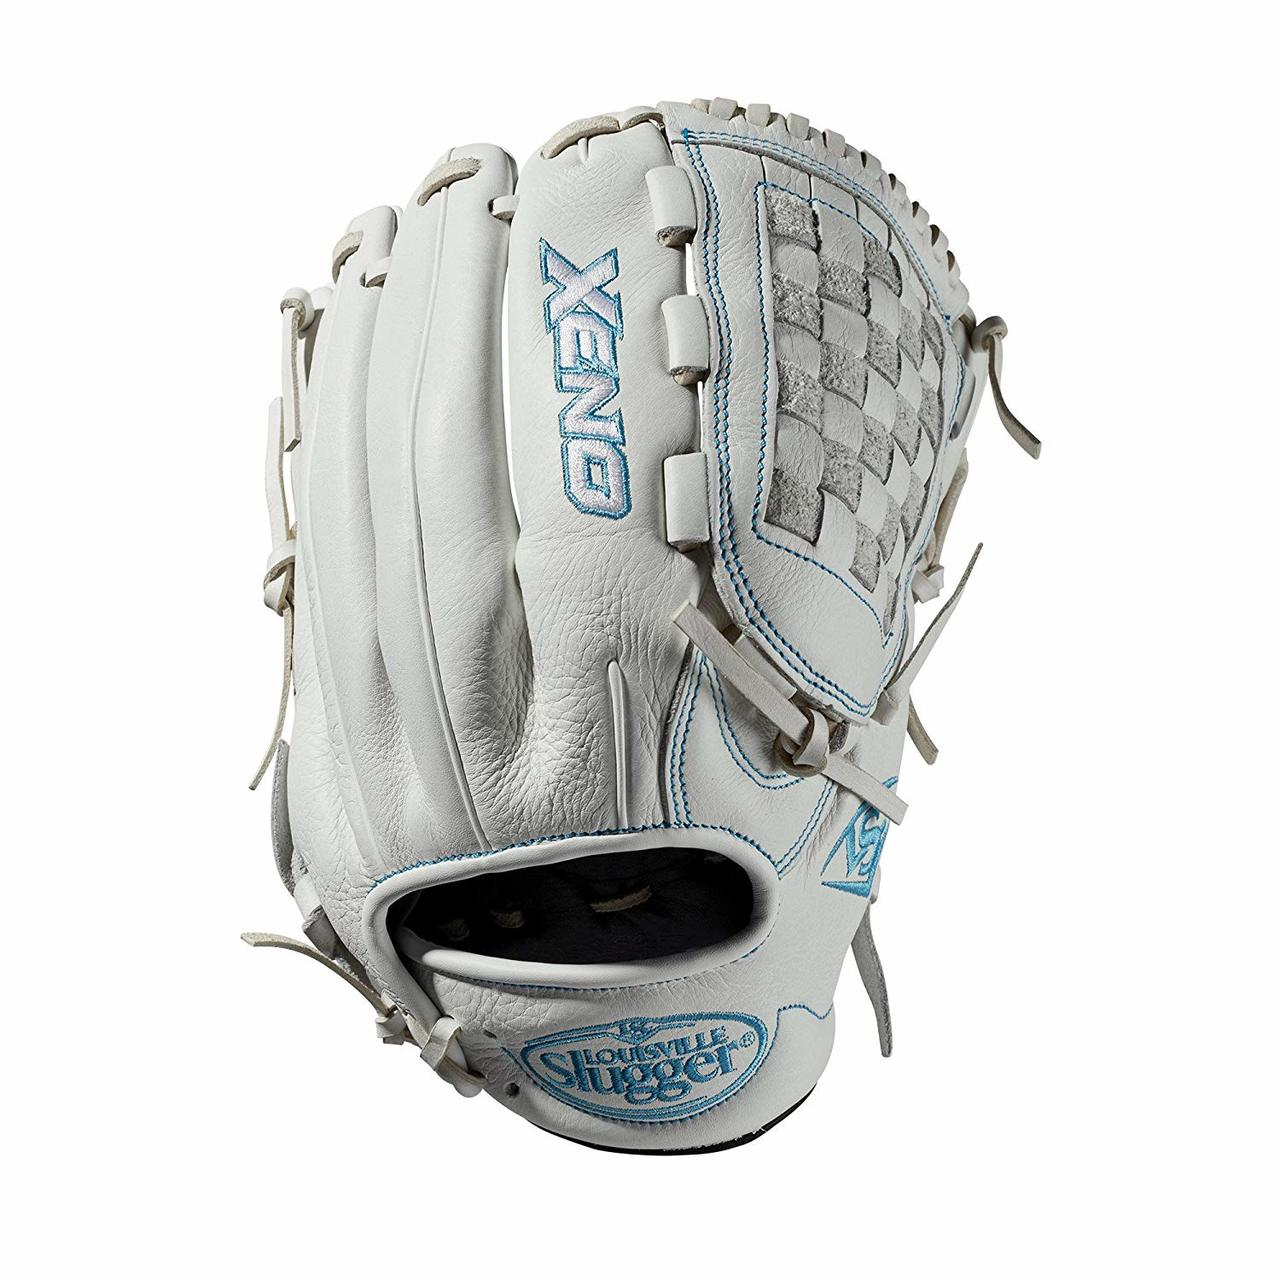 louisville-slugger-2019-xeno-fastpitch-softball-glove-12-inch-right-hand-throw WTLXNRF1912-RightHandThrow  887768711351 12 infield glove Closed weave web Memory foam wrist lining White